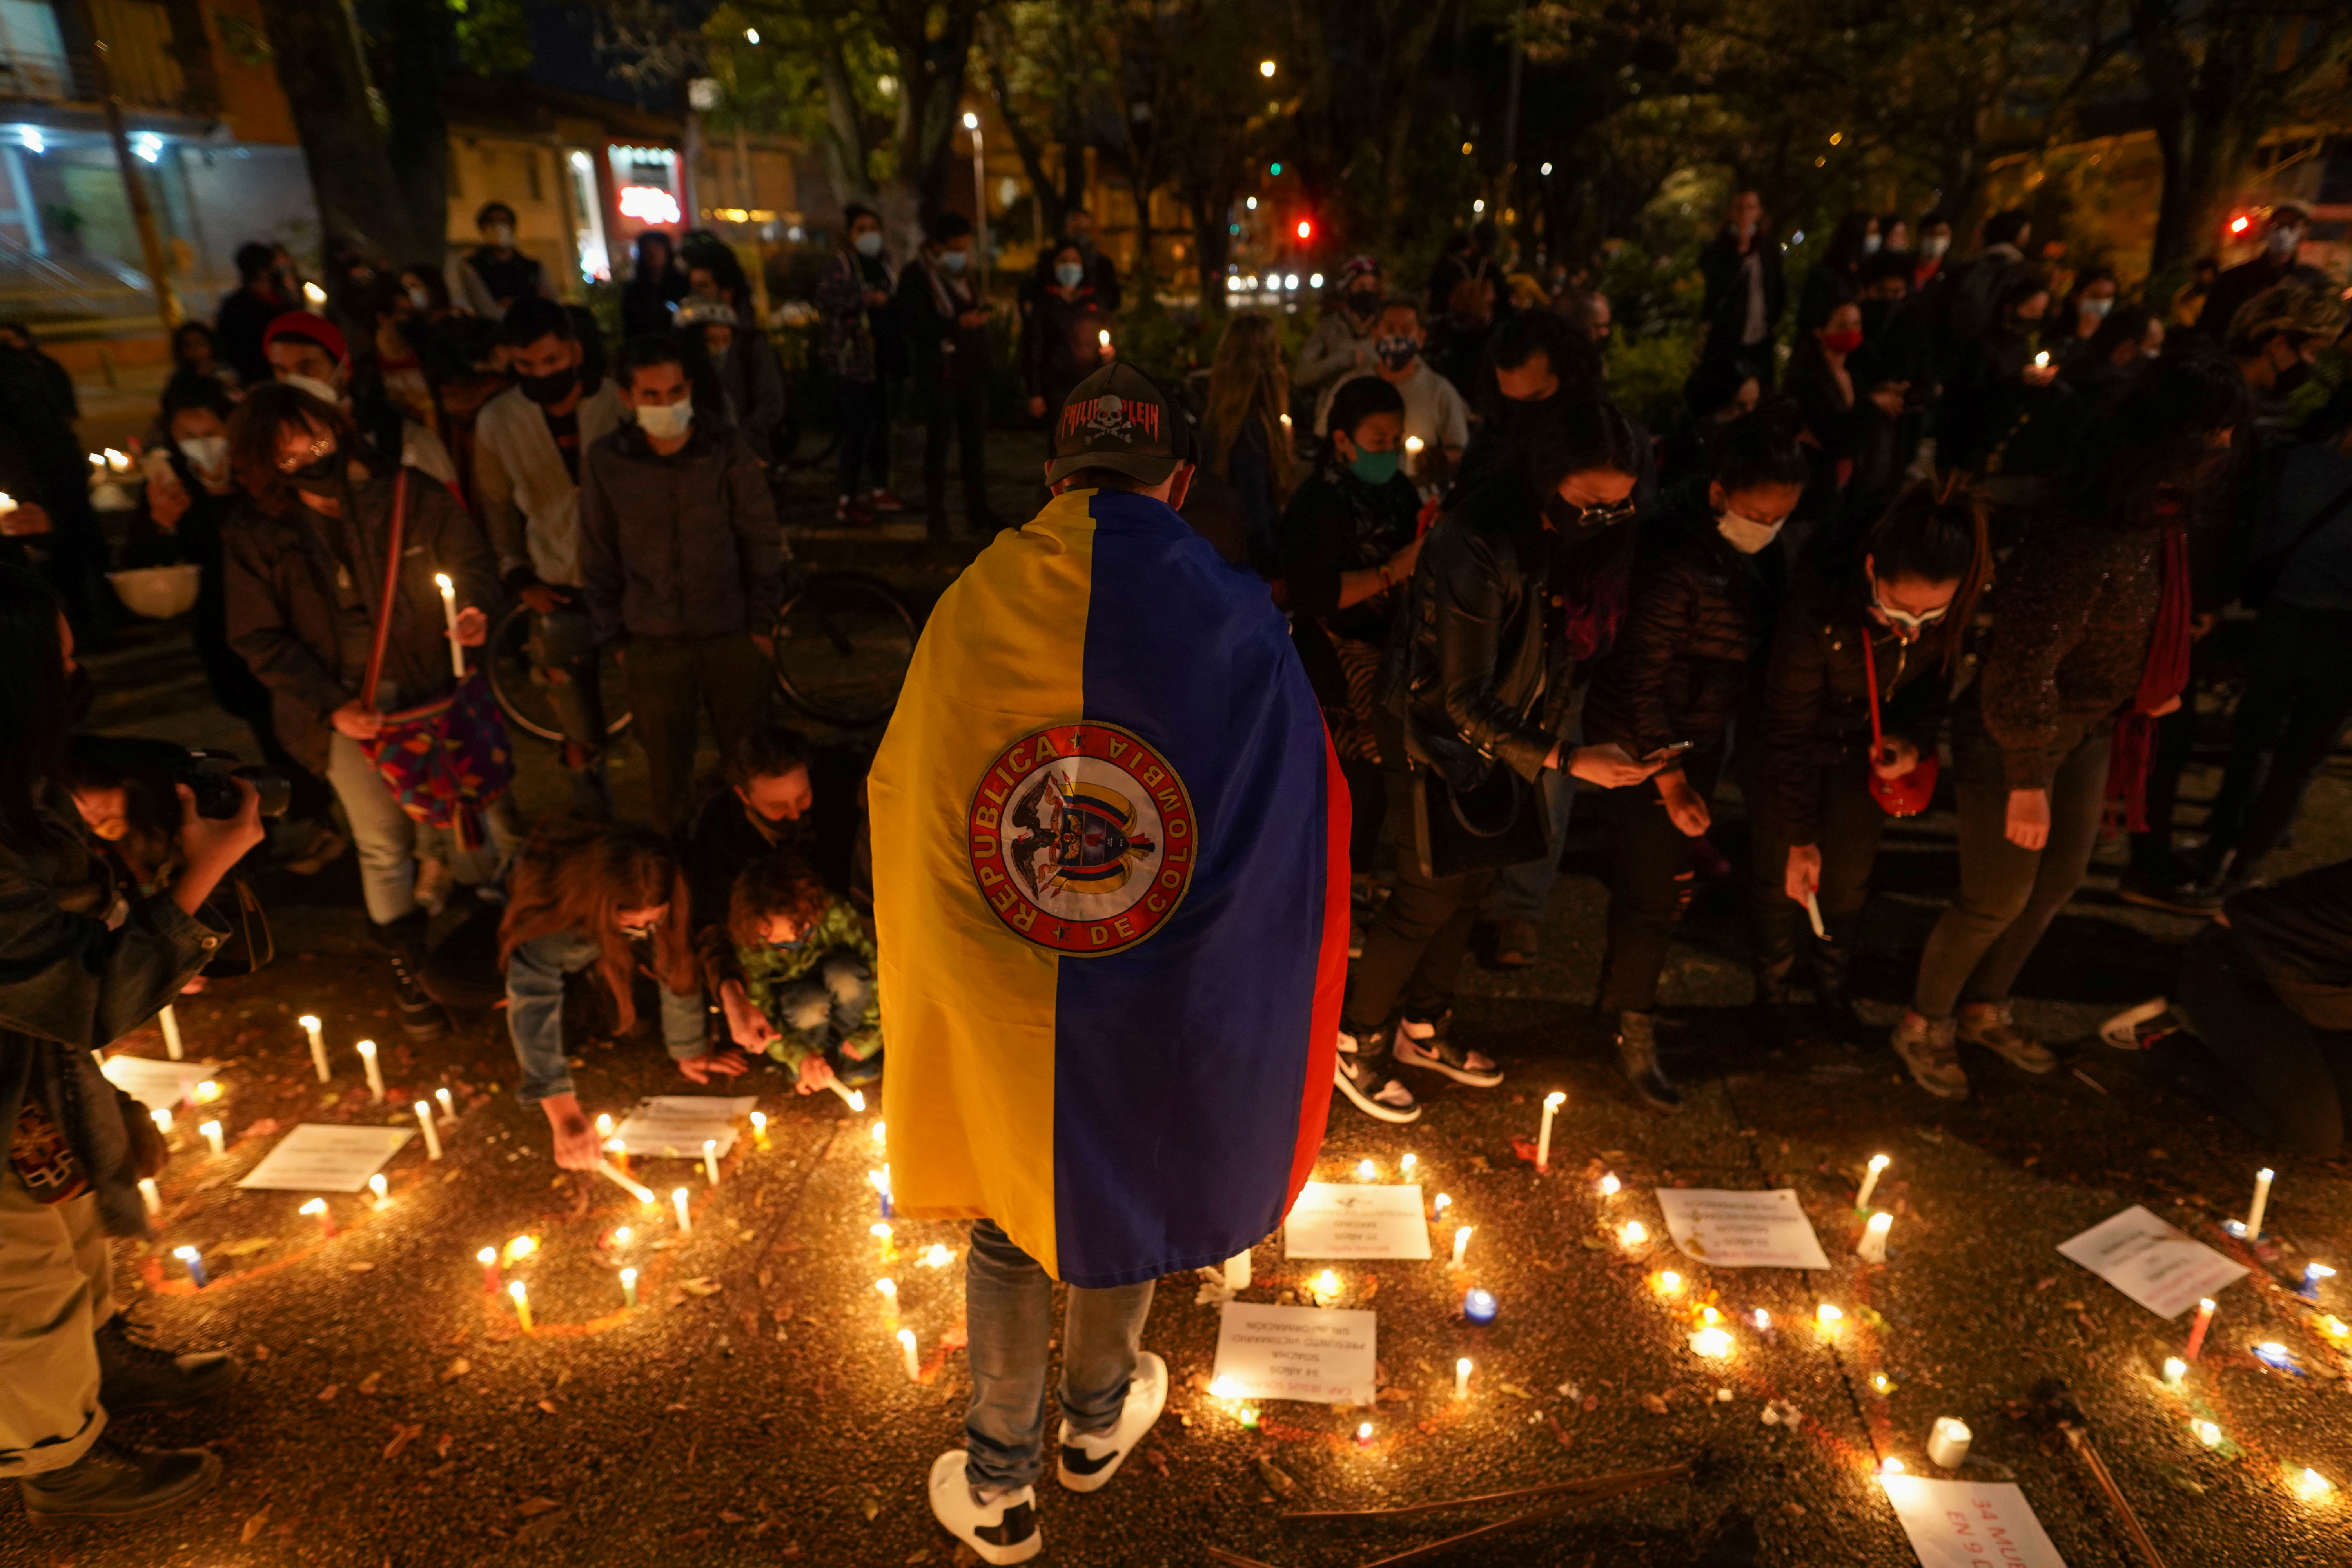 Demonstrators take part in a protest demanding government action to tackle poverty, police violence and inequalities in the health and education systems, in Bogota, Colombia May 6, 2021.  REUTERS/Nathalia Angarita